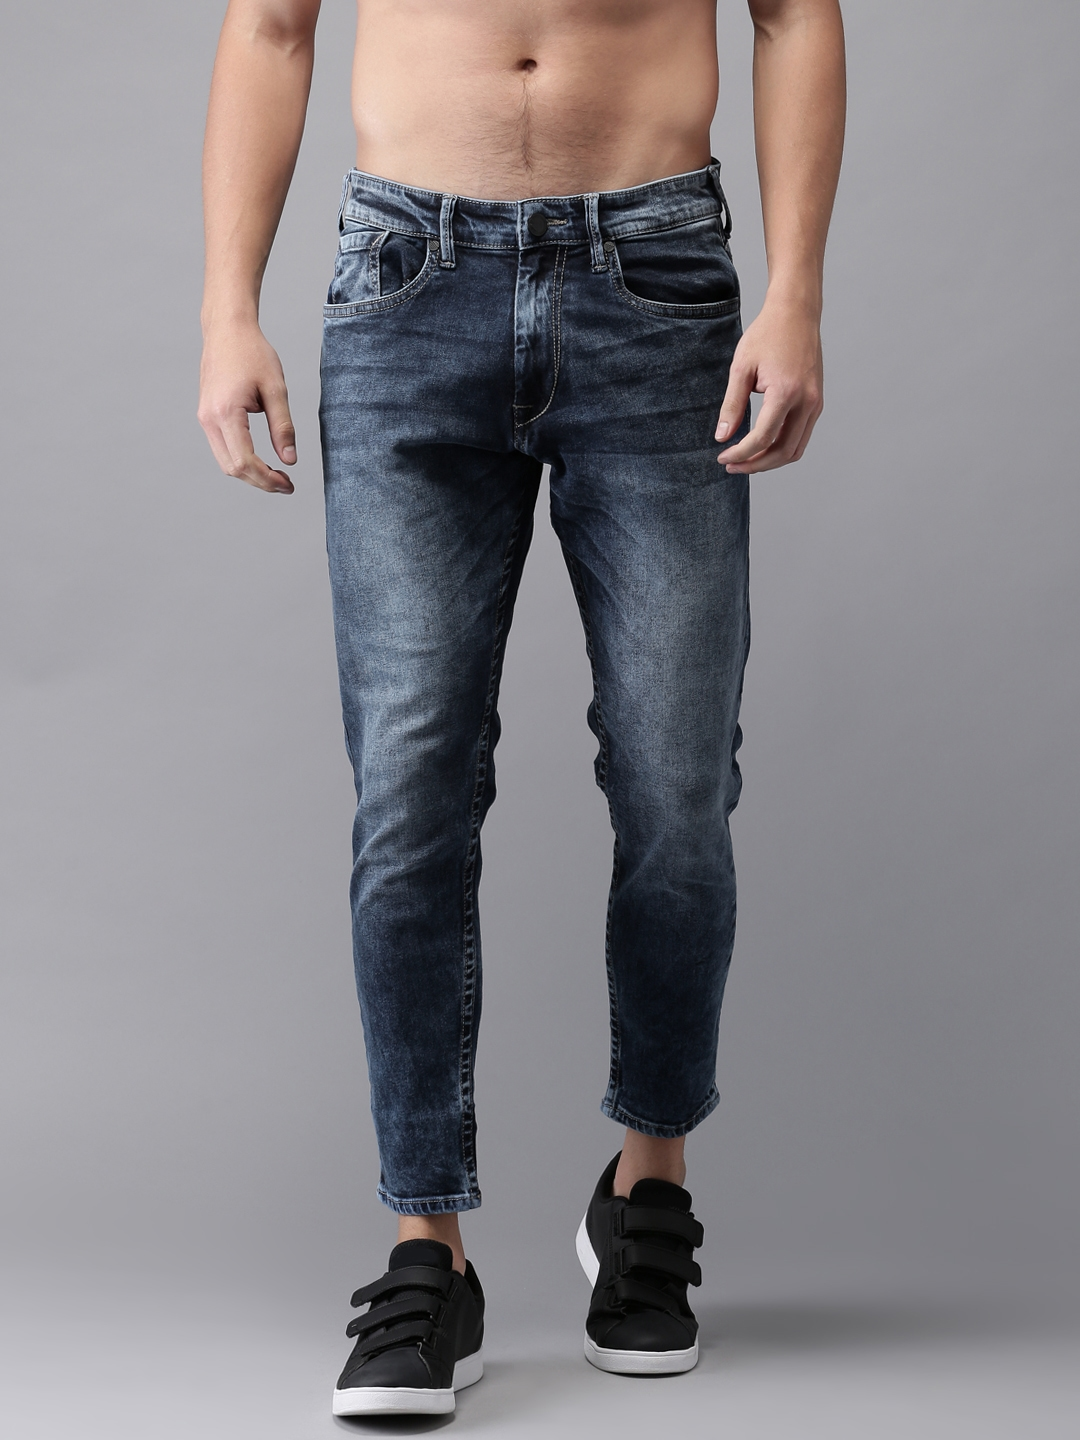 bfd91a23e Moda Rapido Men Blue Slim Tapered Fit Cropped Mid-Rise Clean Look  Stretchable Jeans